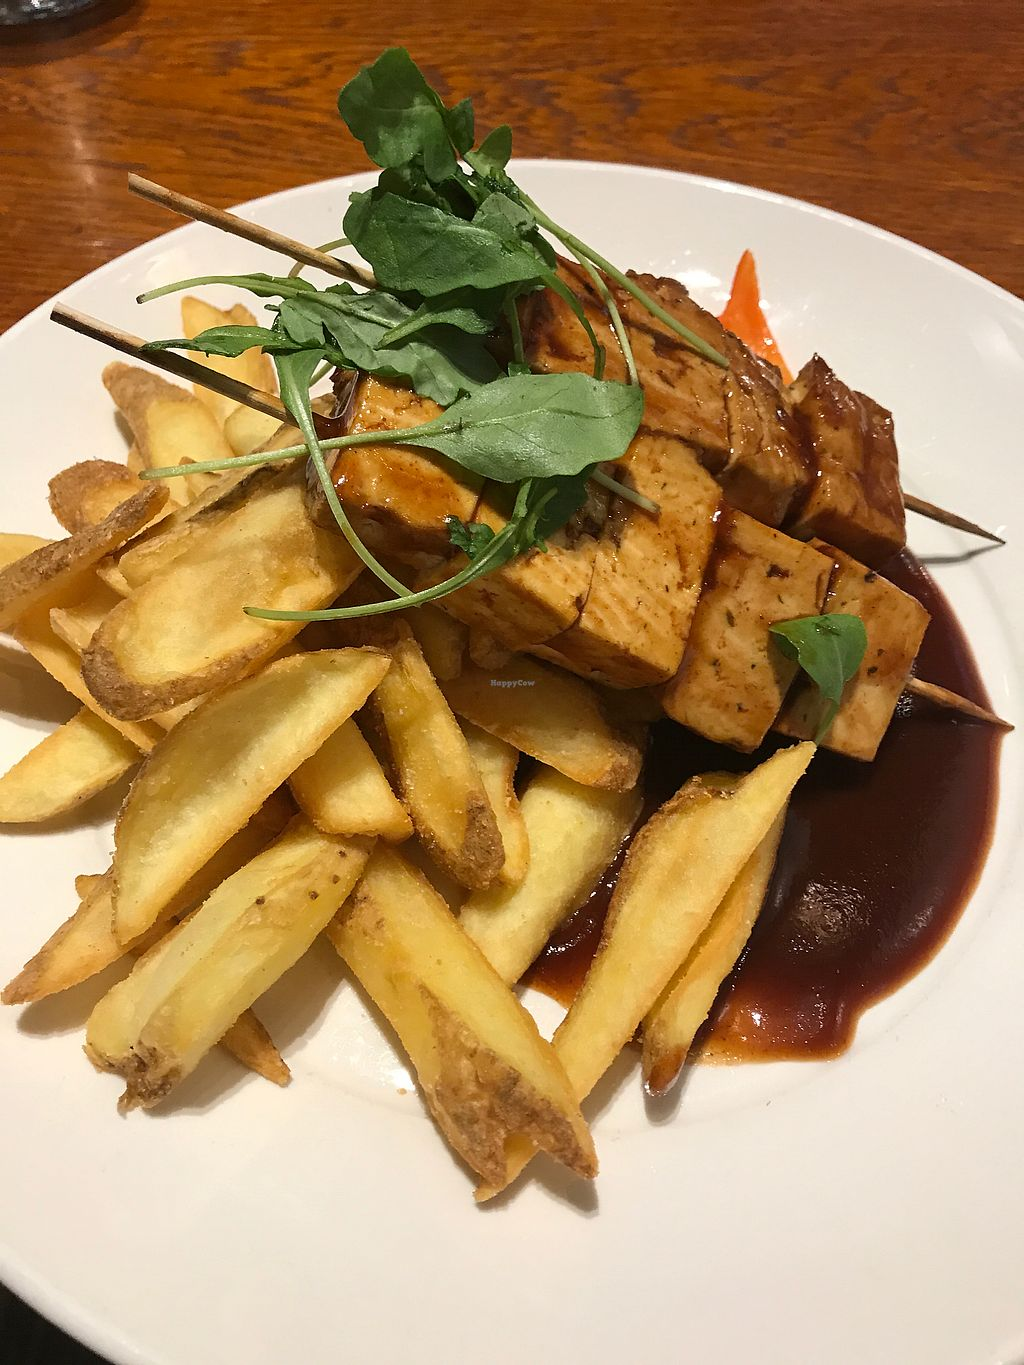 """Photo of Chico's - Sello  by <a href=""""/members/profile/RoosaHahkala"""">RoosaHahkala</a> <br/>Tofu rotisserie with bbq-sauce and fries <br/> August 3, 2017  - <a href='/contact/abuse/image/58902/288165'>Report</a>"""